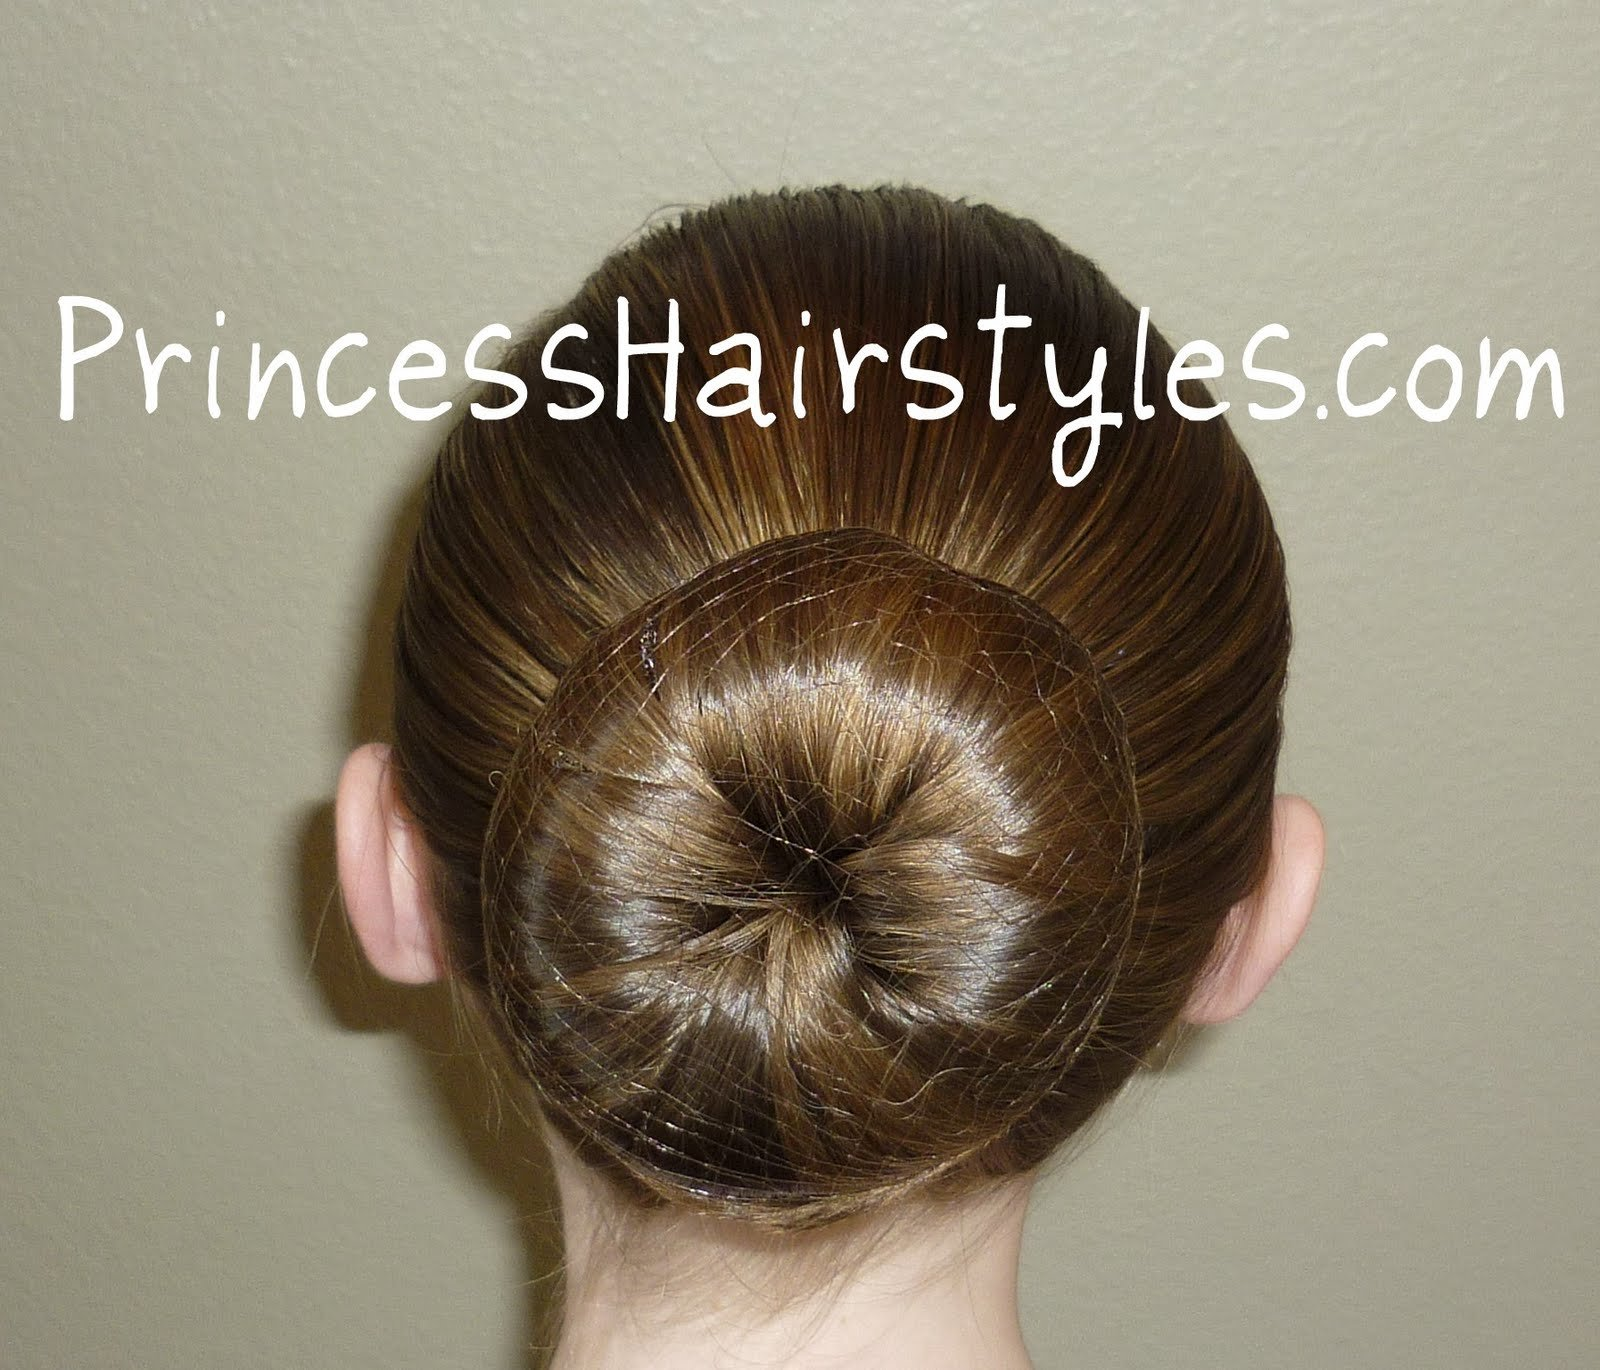 The Best The Perfect Ballet Bun Hairstyles For Girls Princess Hairstyles Pictures